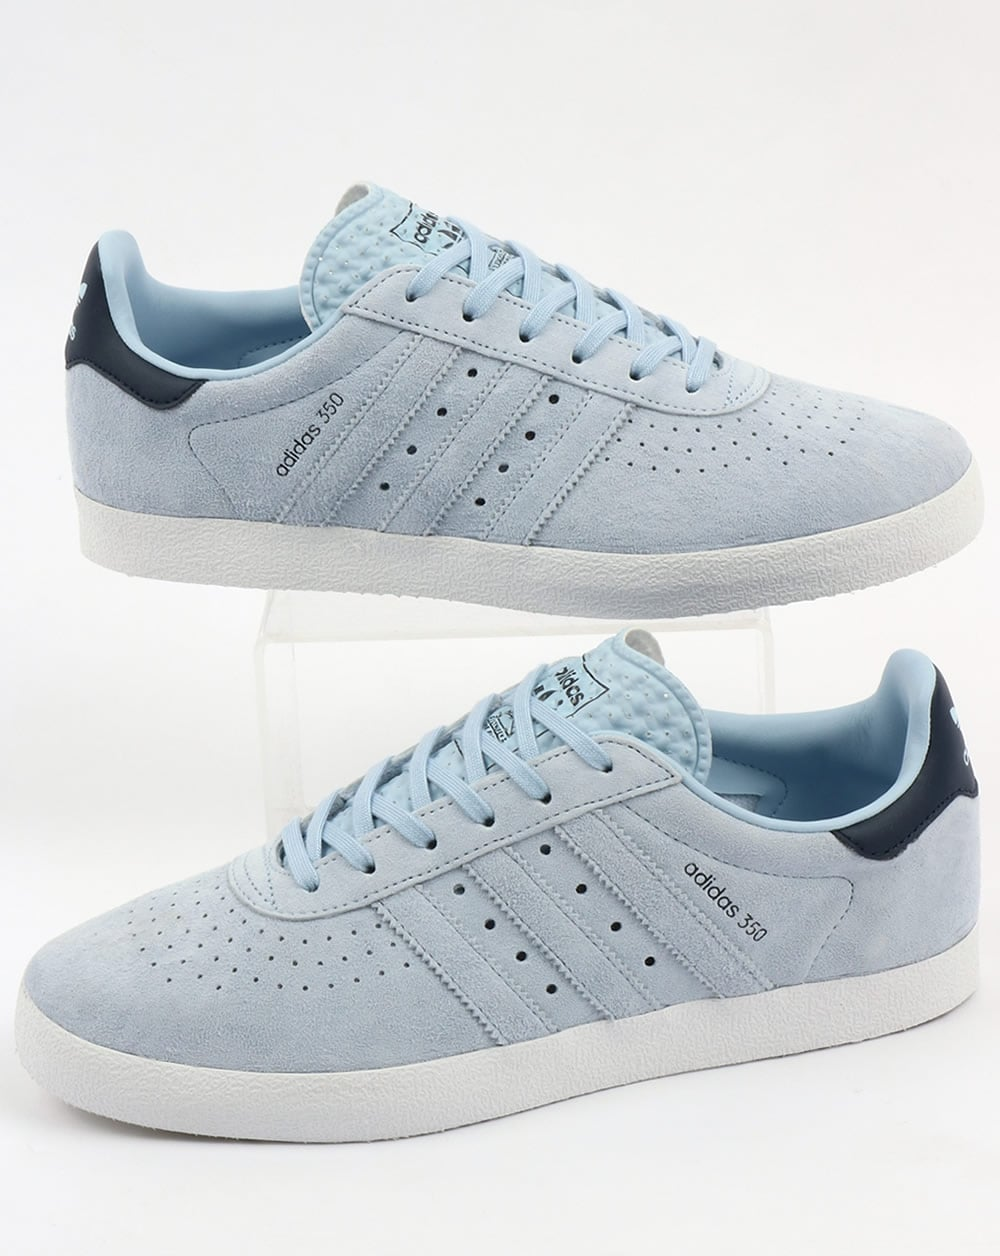 91b818761 adidas Trainers Adidas 350 Trainers Sky Blue